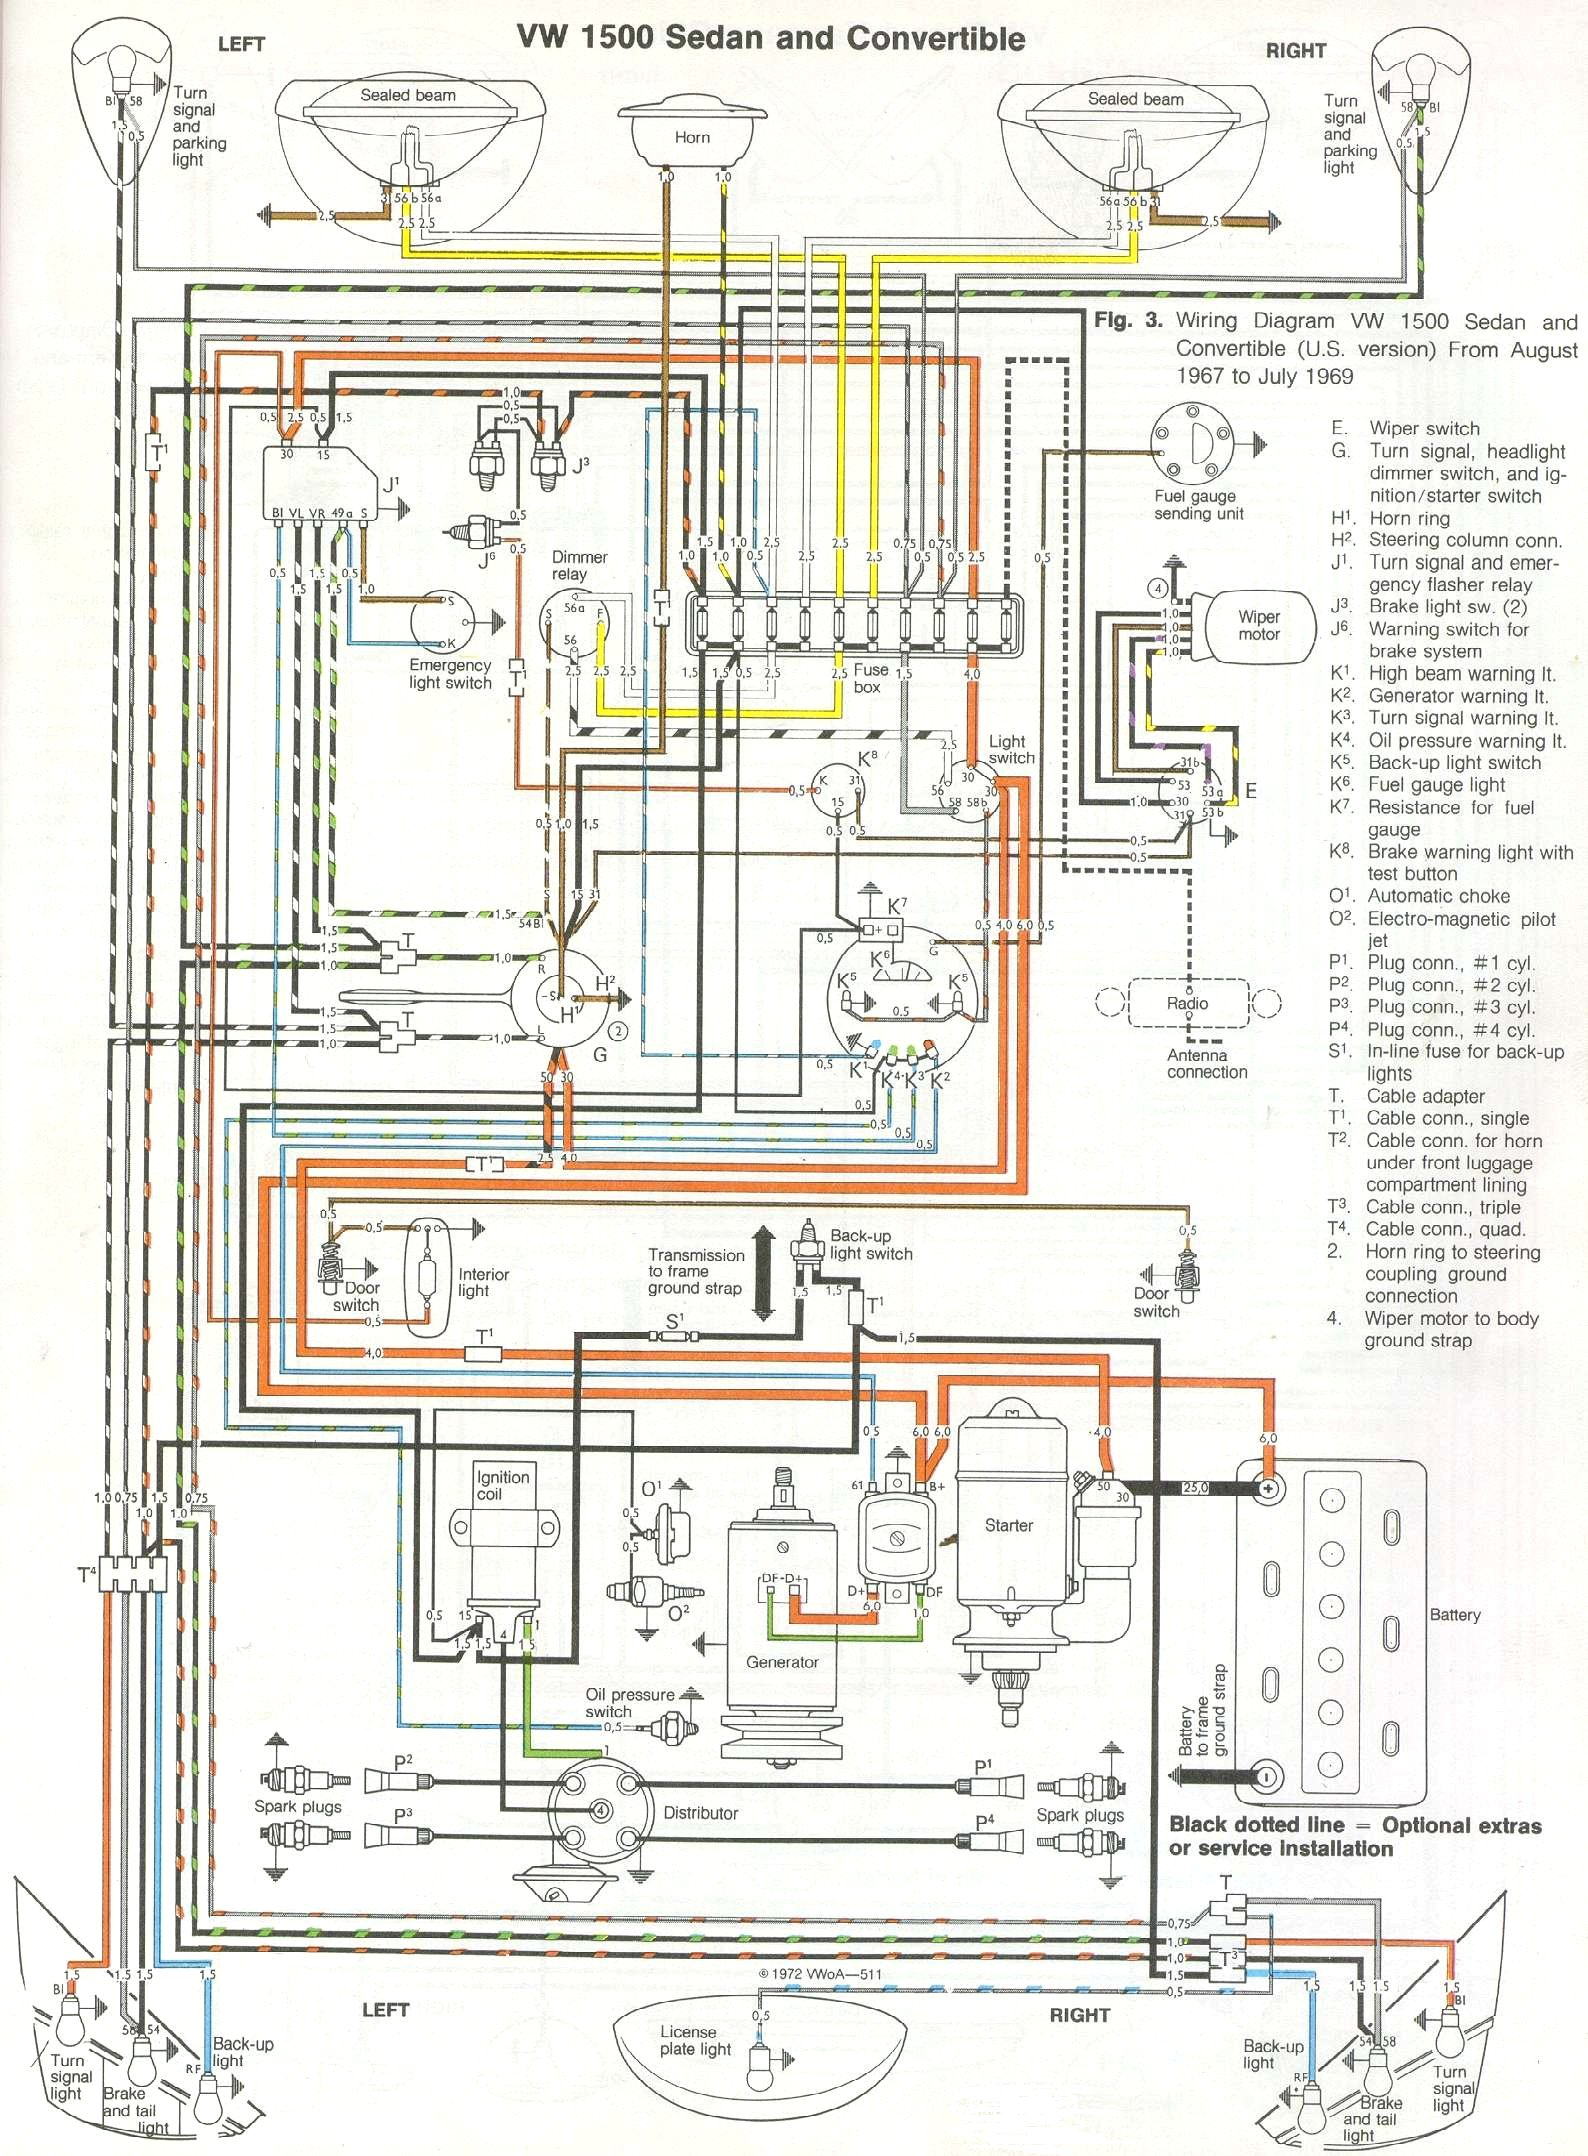 bug_6869 thesamba com type 1 wiring diagrams find wiring diagram for 87 ford f 150 at eliteediting.co